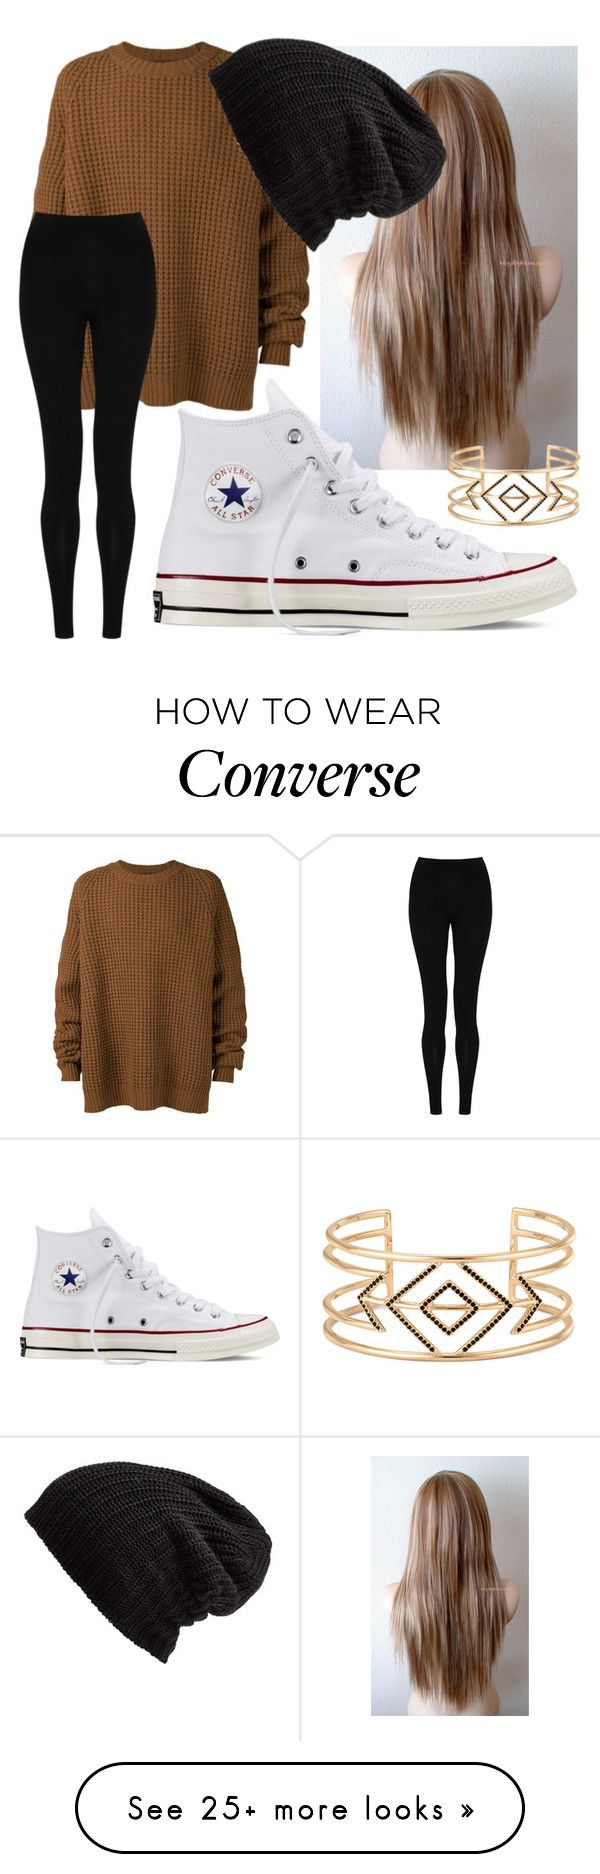 """Untitled #234"" by fashionlyla on Polyvore featuring Haider Ackermann, M&S Collection, Converse, Free People and Stella & Dot"